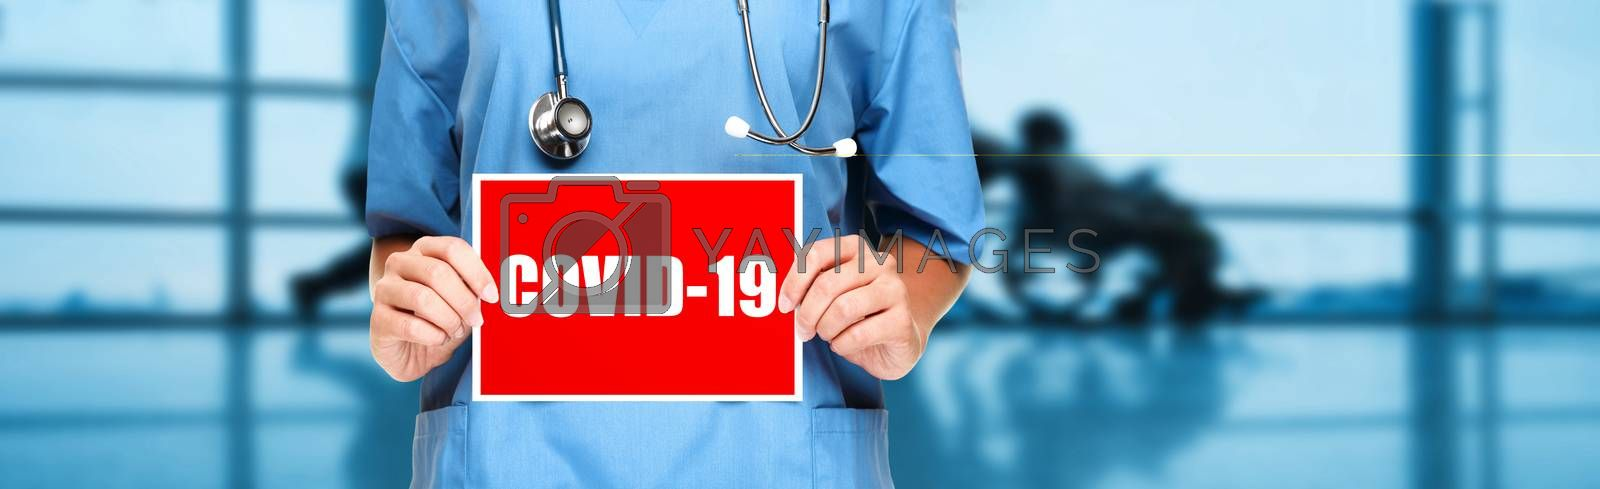 COVID-19 Coronavirus doctor holding sign in hospital banner background. Panoramic medical worker showing corona virus sign panoramic banner with text title by Maridav